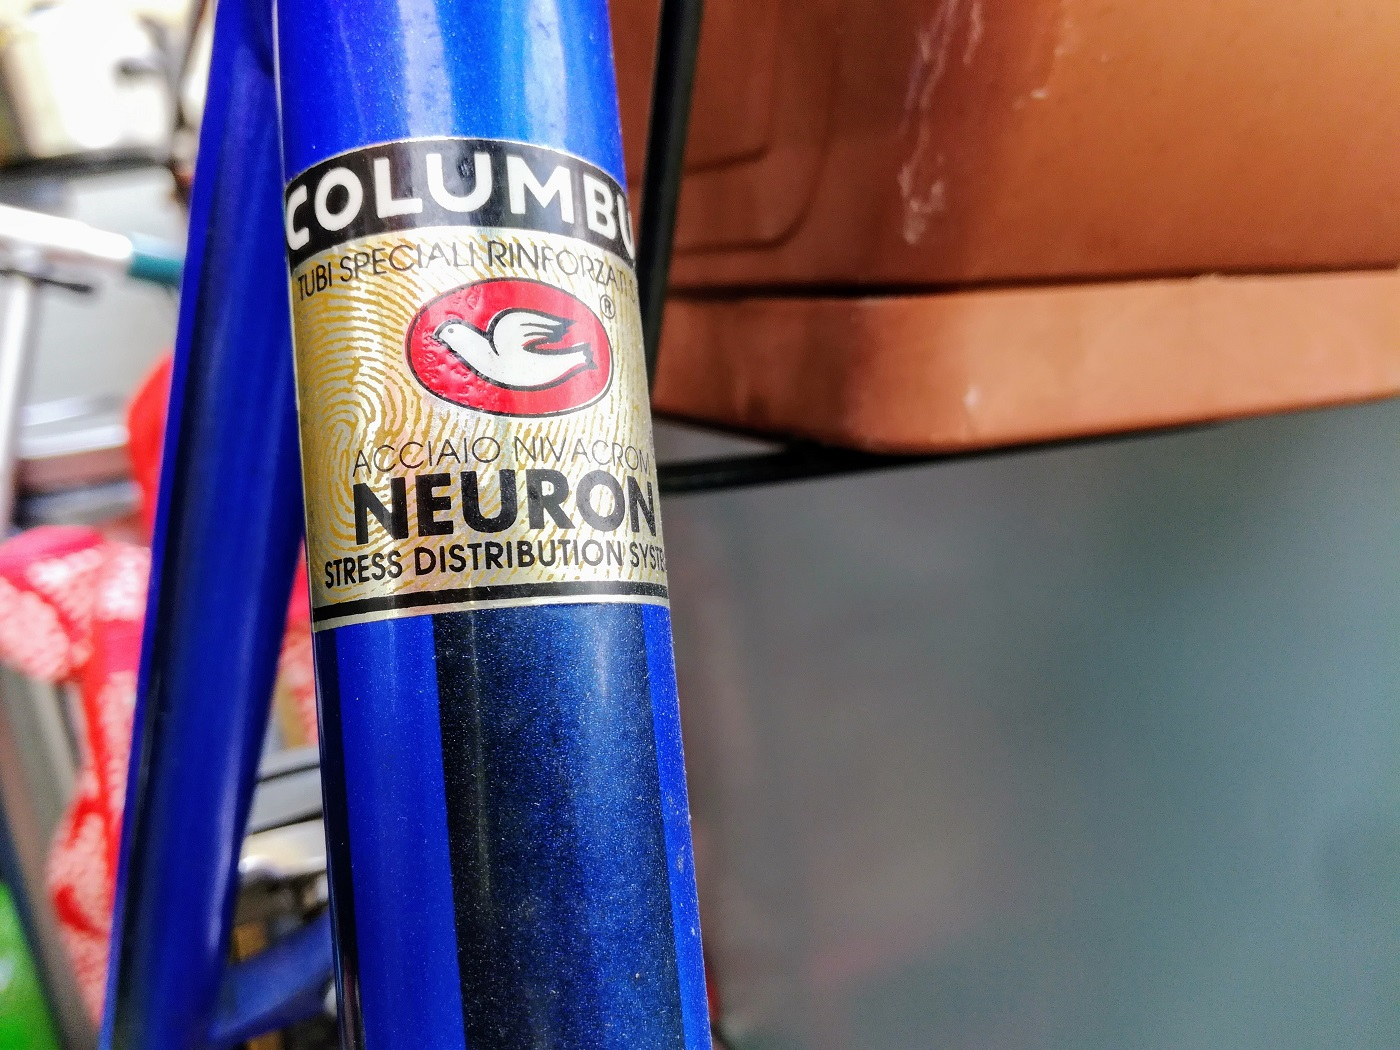 Preuss Columbus Neuron 19100909523024303316452467